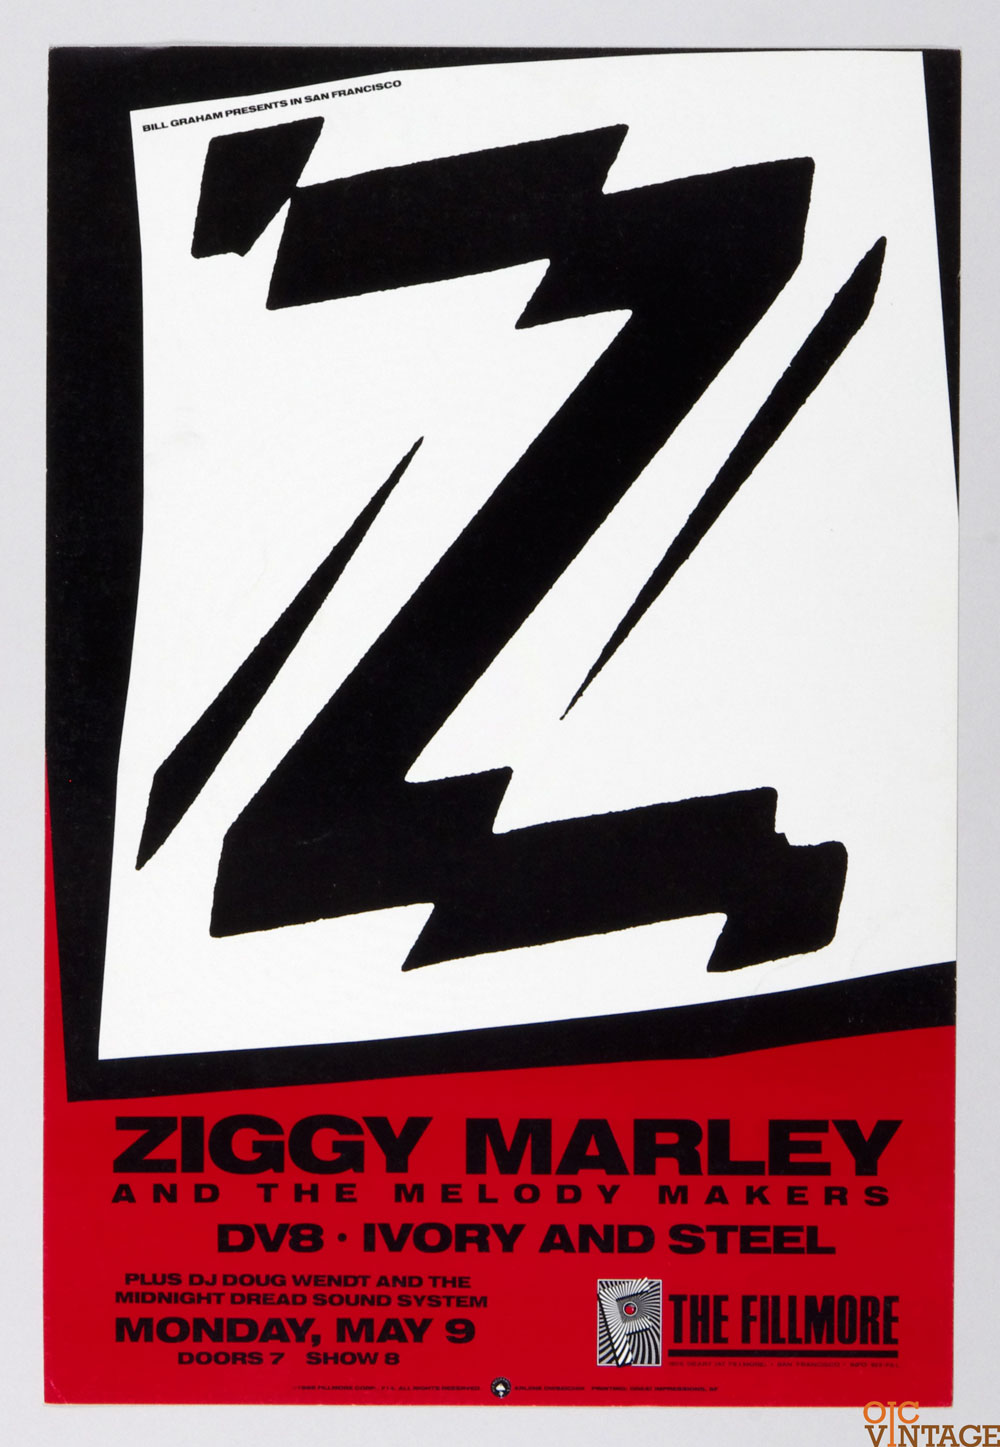 New Fillmore F014 Poster Ziggy Marley DV8 Ivory and Steel 1988 May 9